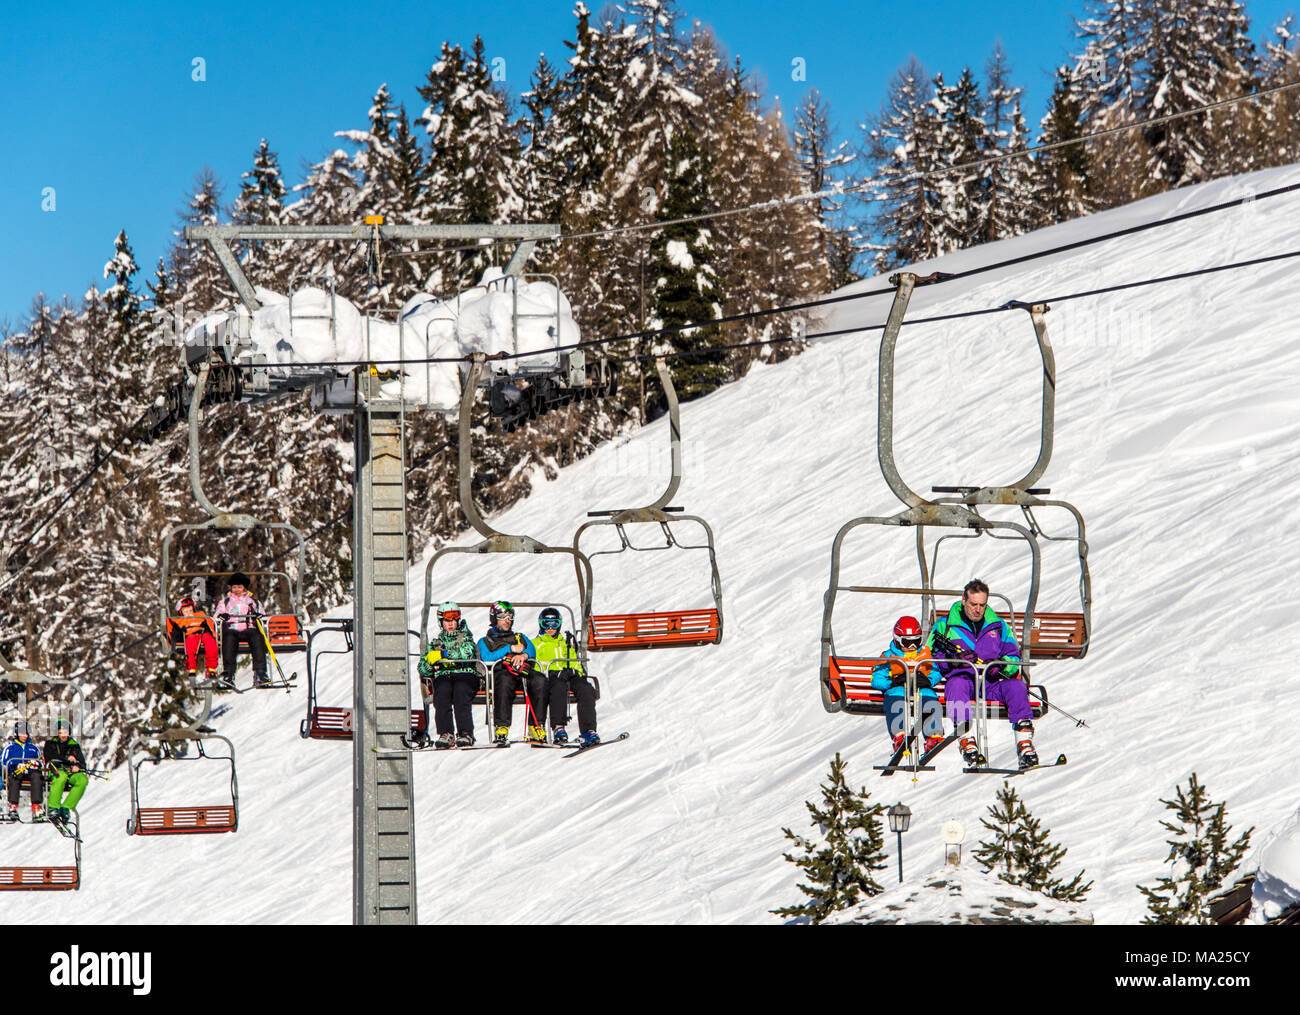 A ski chairlift in Pila ski resort, Aosta Valley, Italy - Stock Image